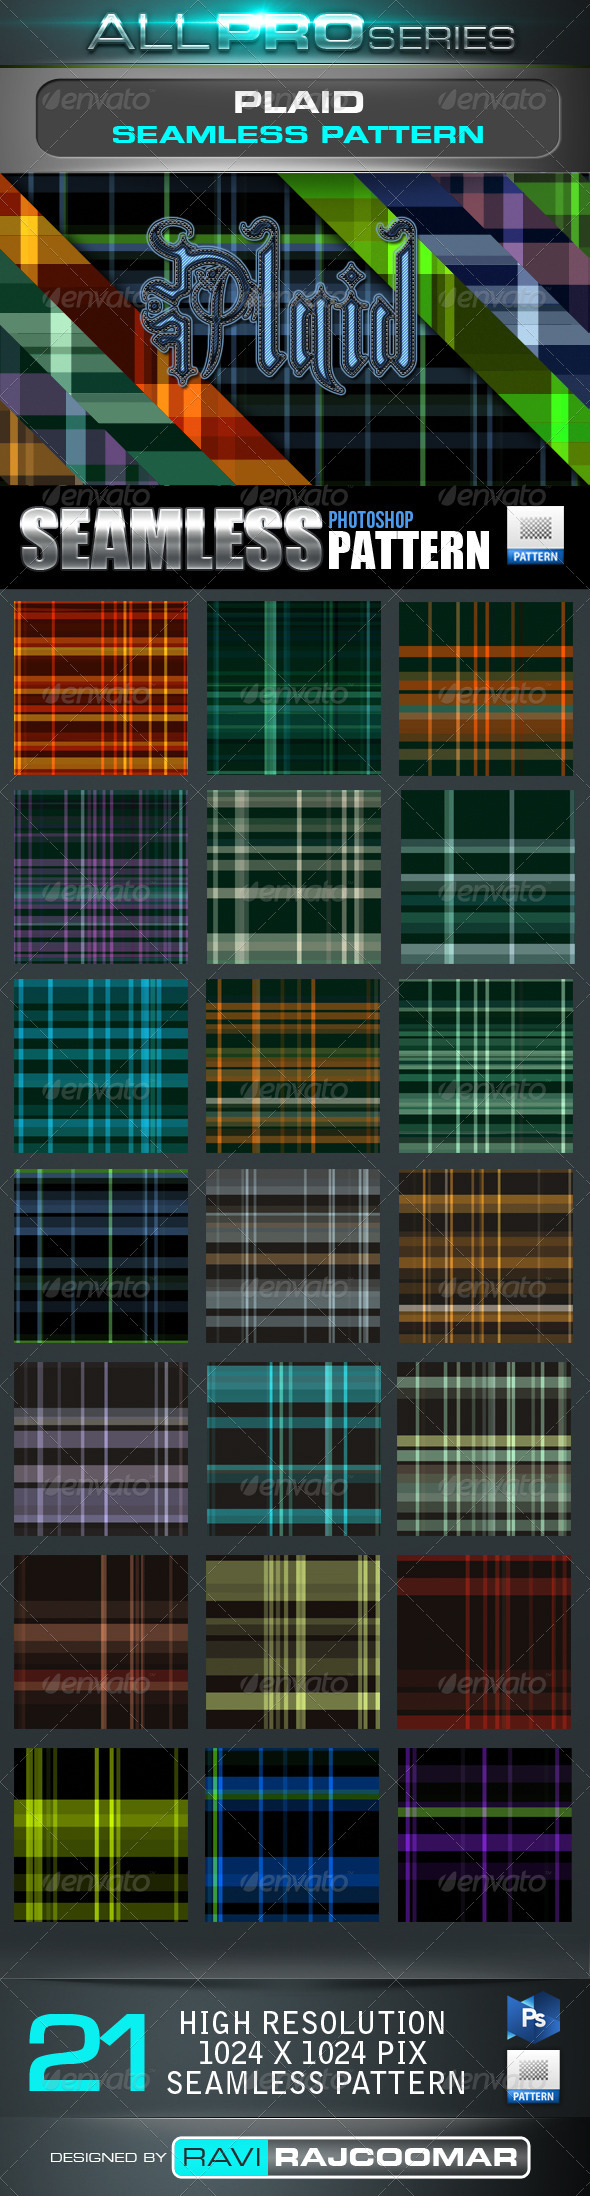 GraphicRiver Plaid Tartan Seamless Tileable Pattern 4038185